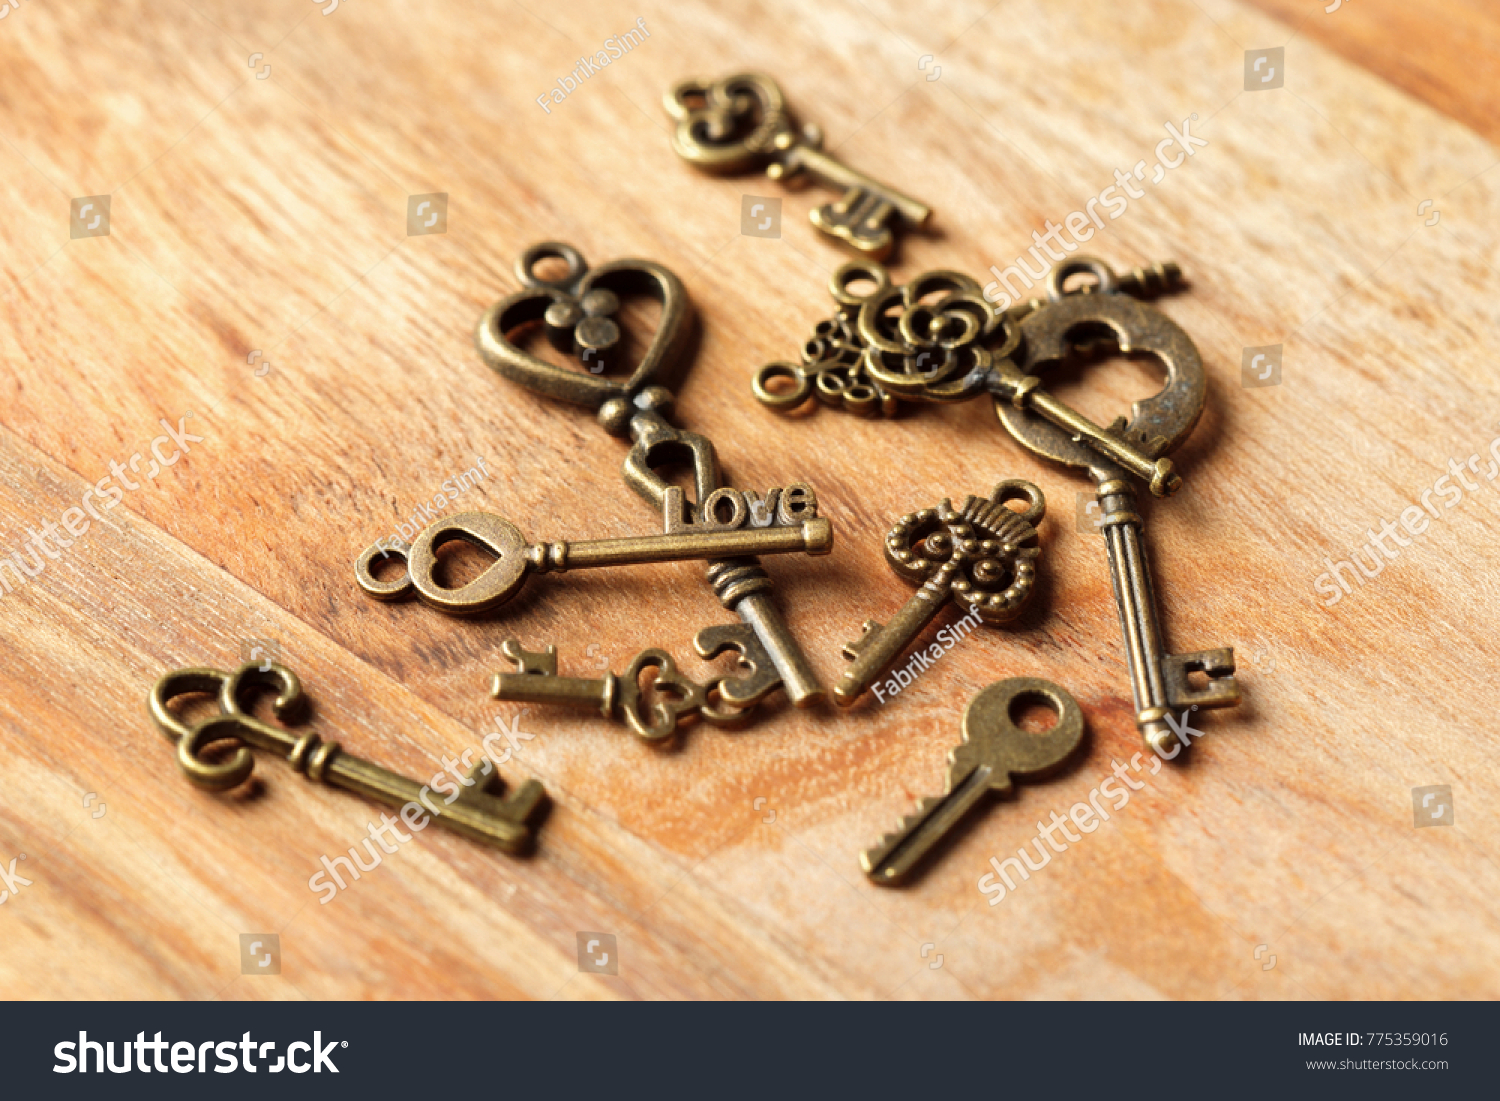 old key on wooden table | EZ Canvas